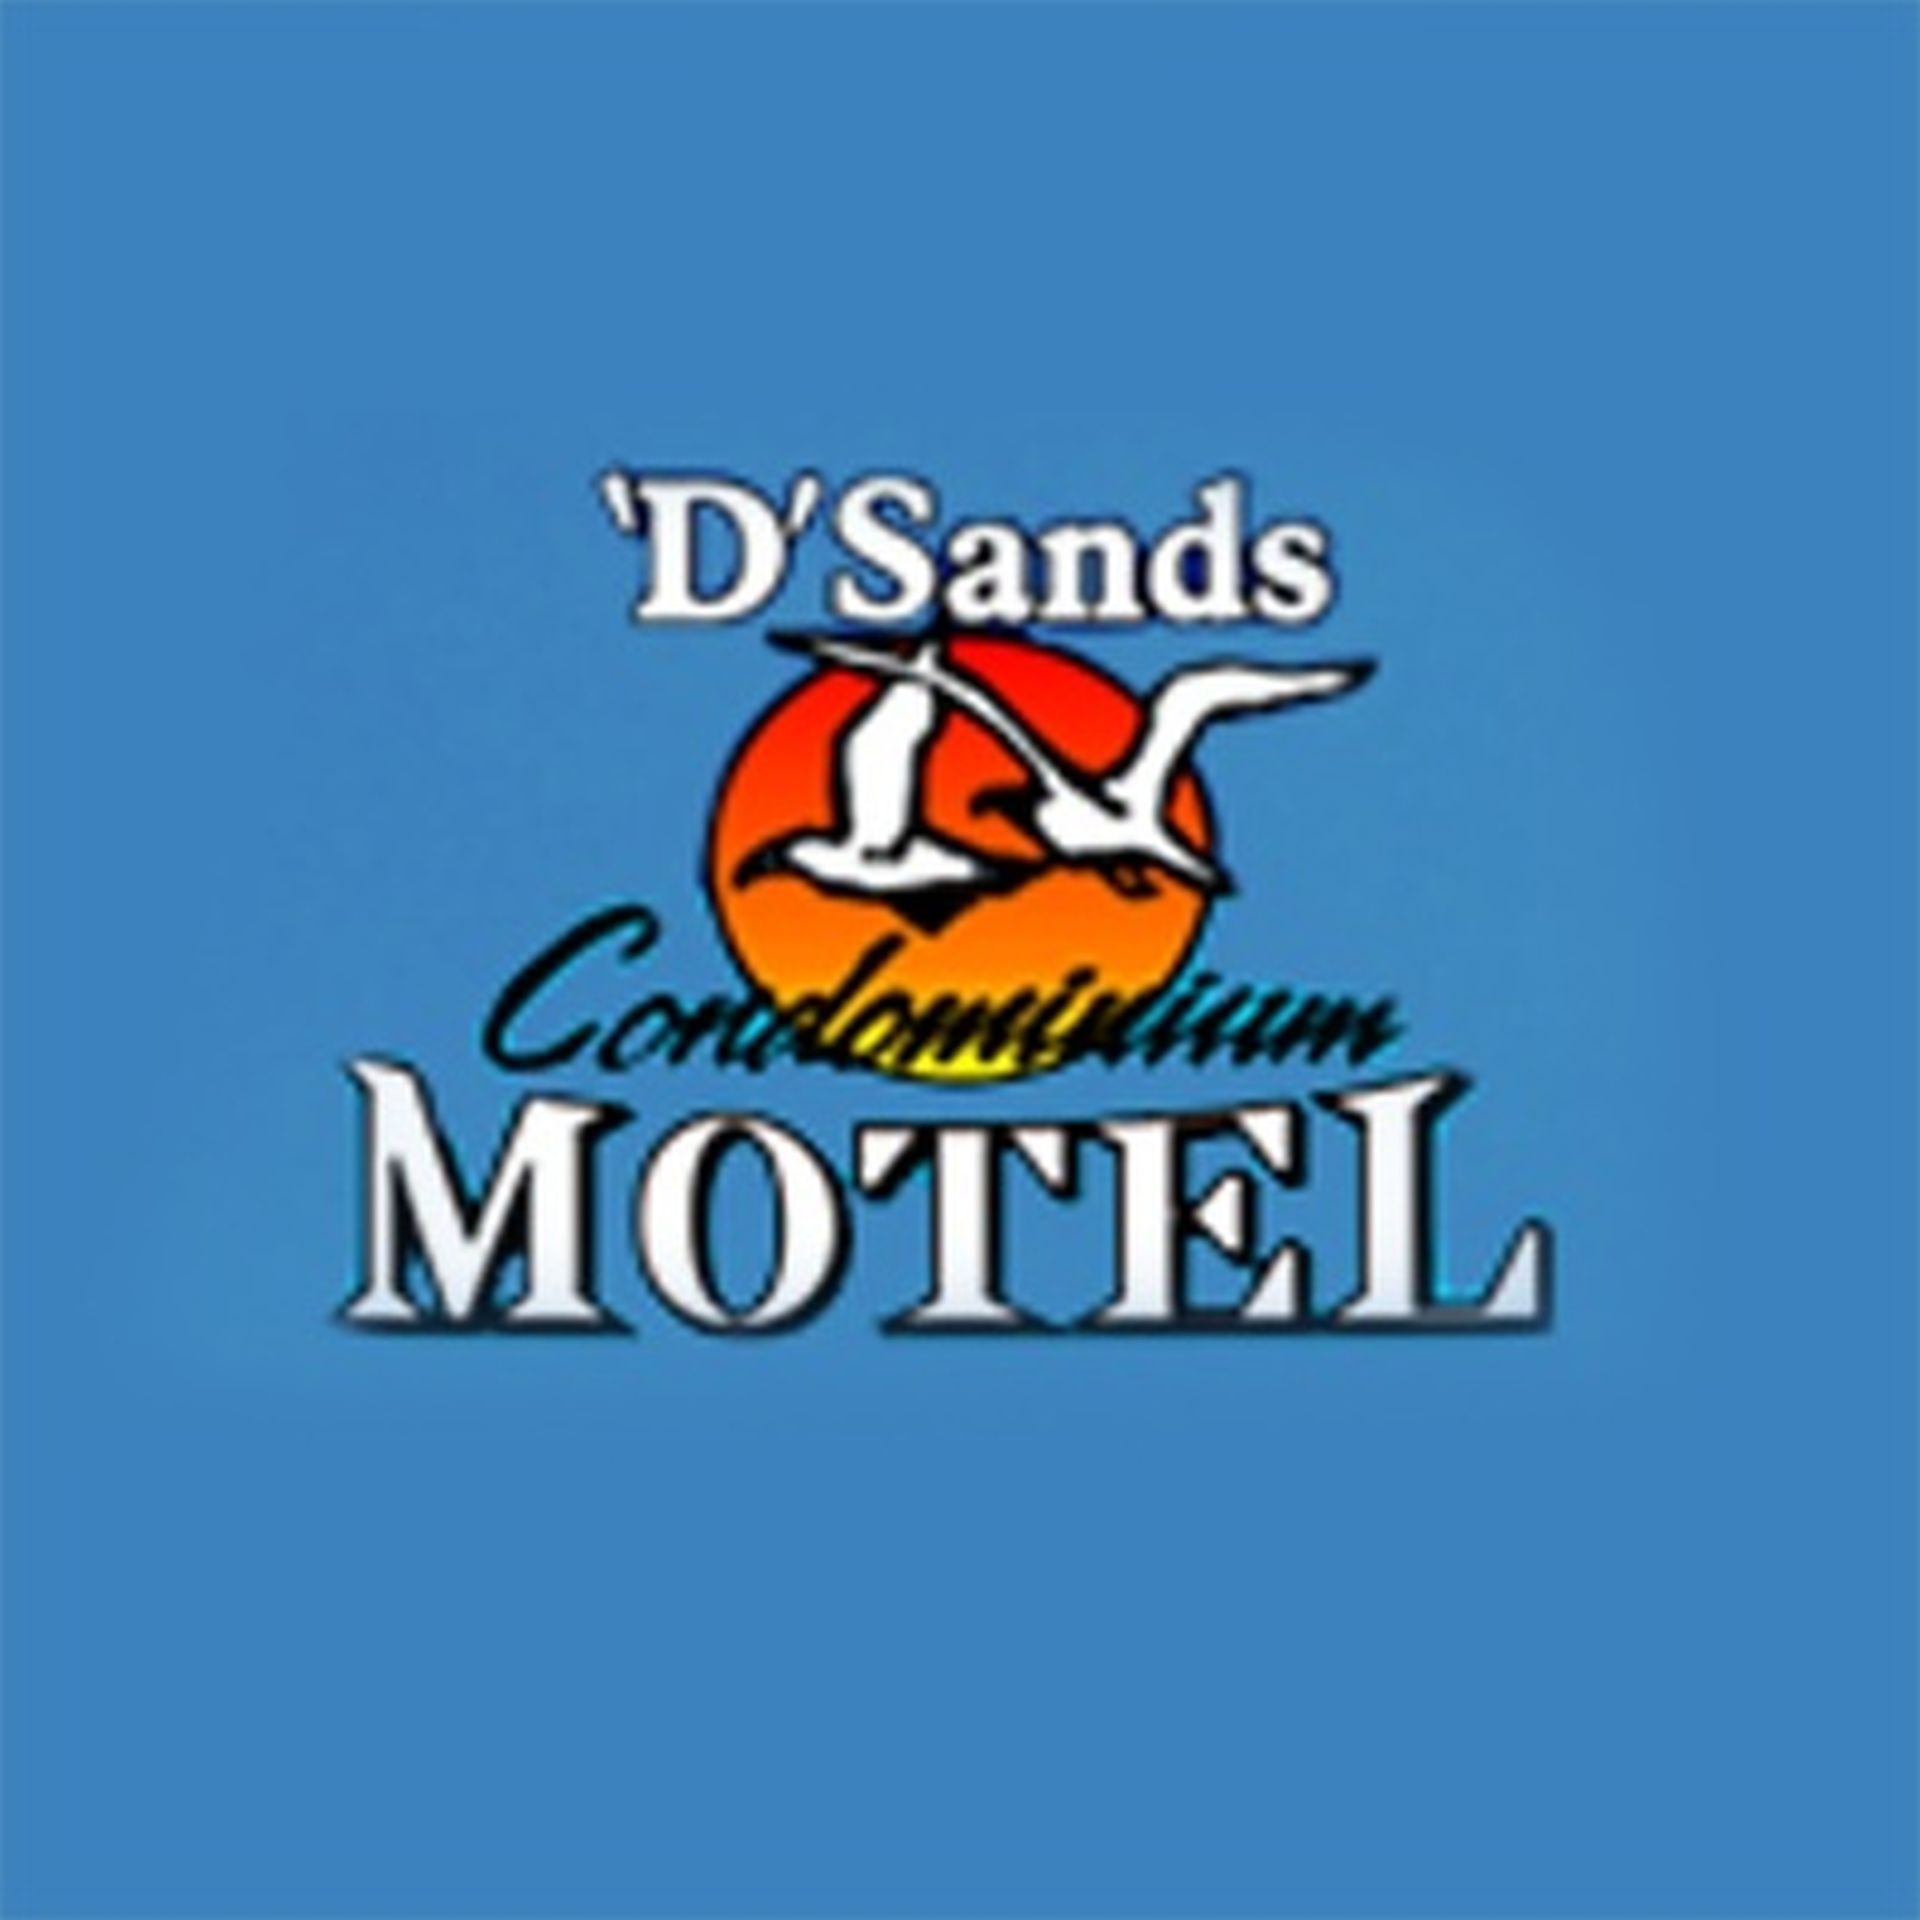 D Sands Motel, Lincoln City OR